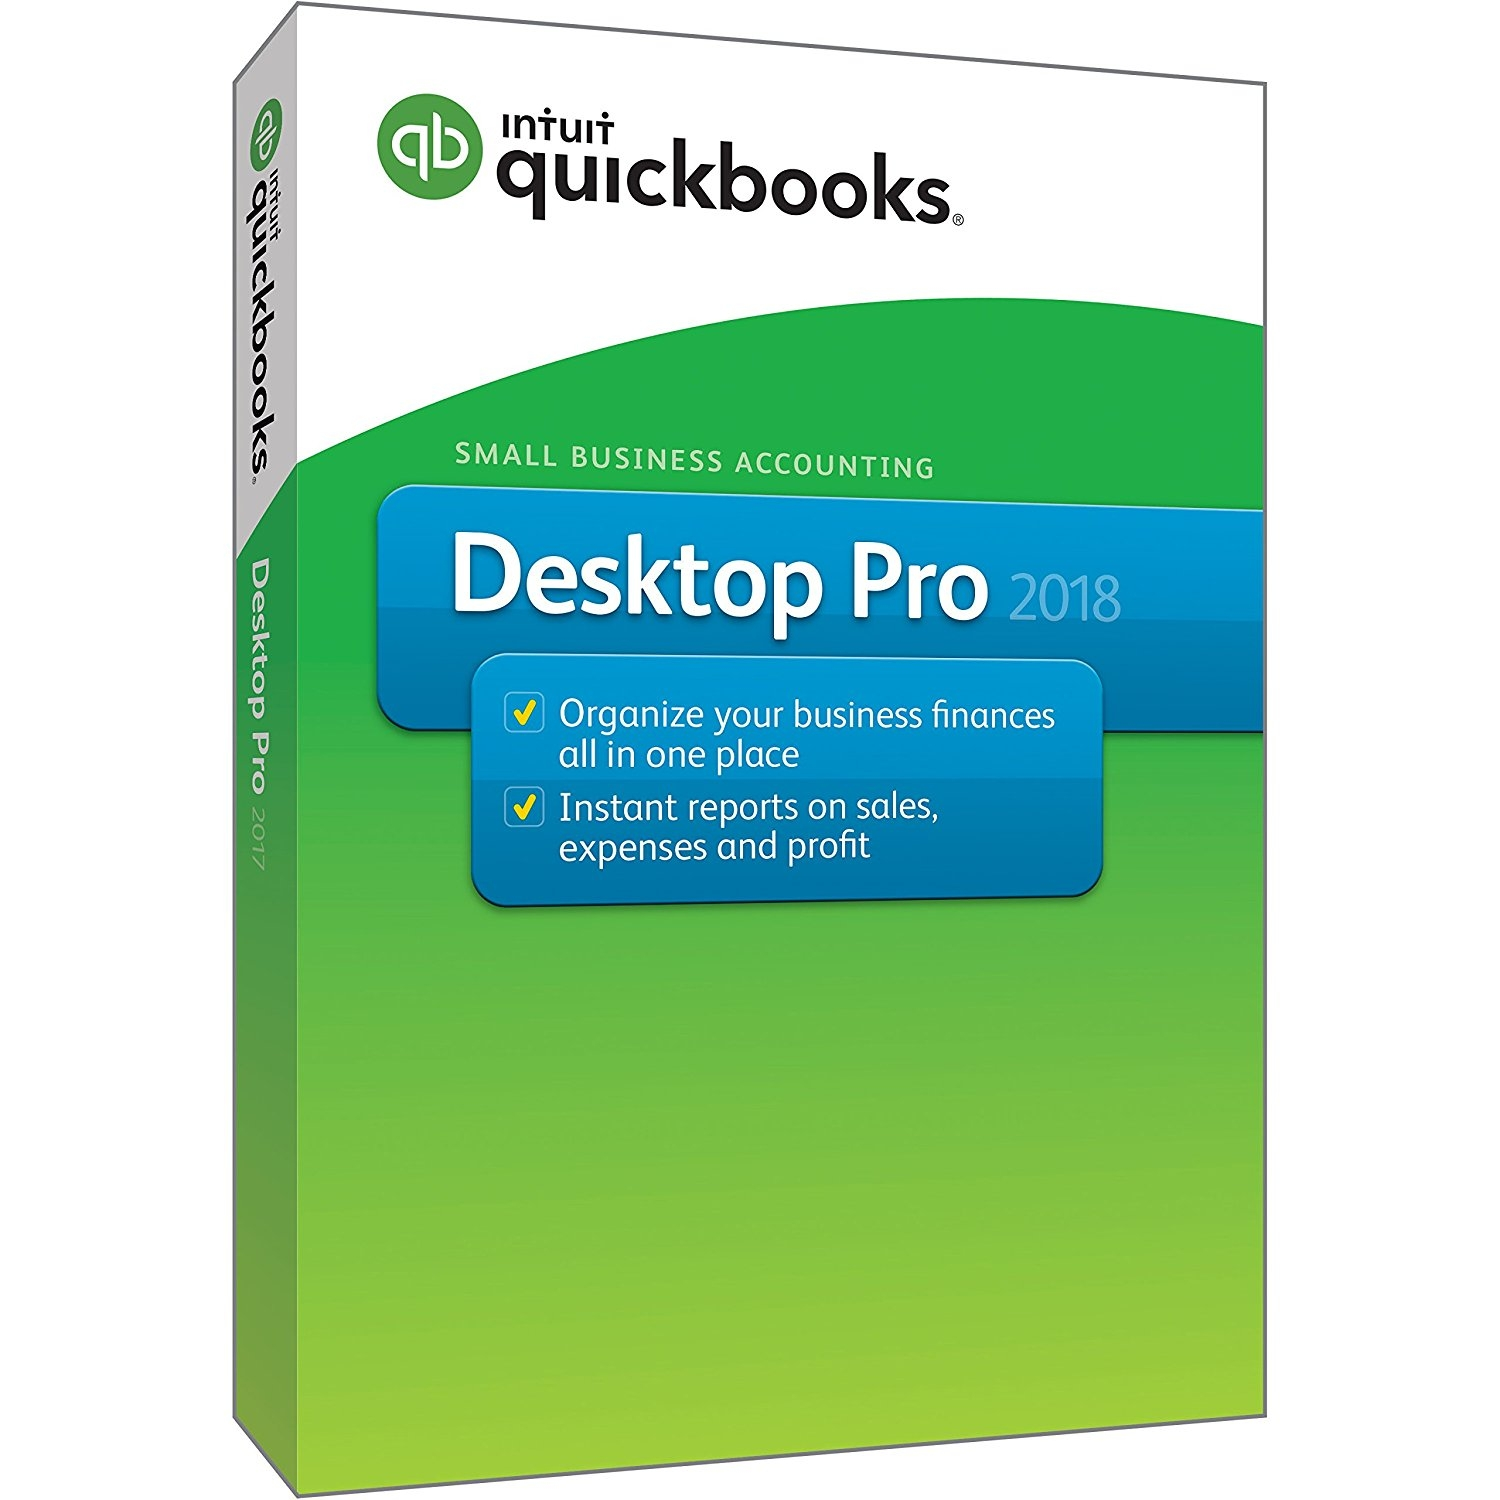 Intuit QuickBooks Desktop Pro 2018 Small Business Accounting Software [PC Disc] Windows US Edition